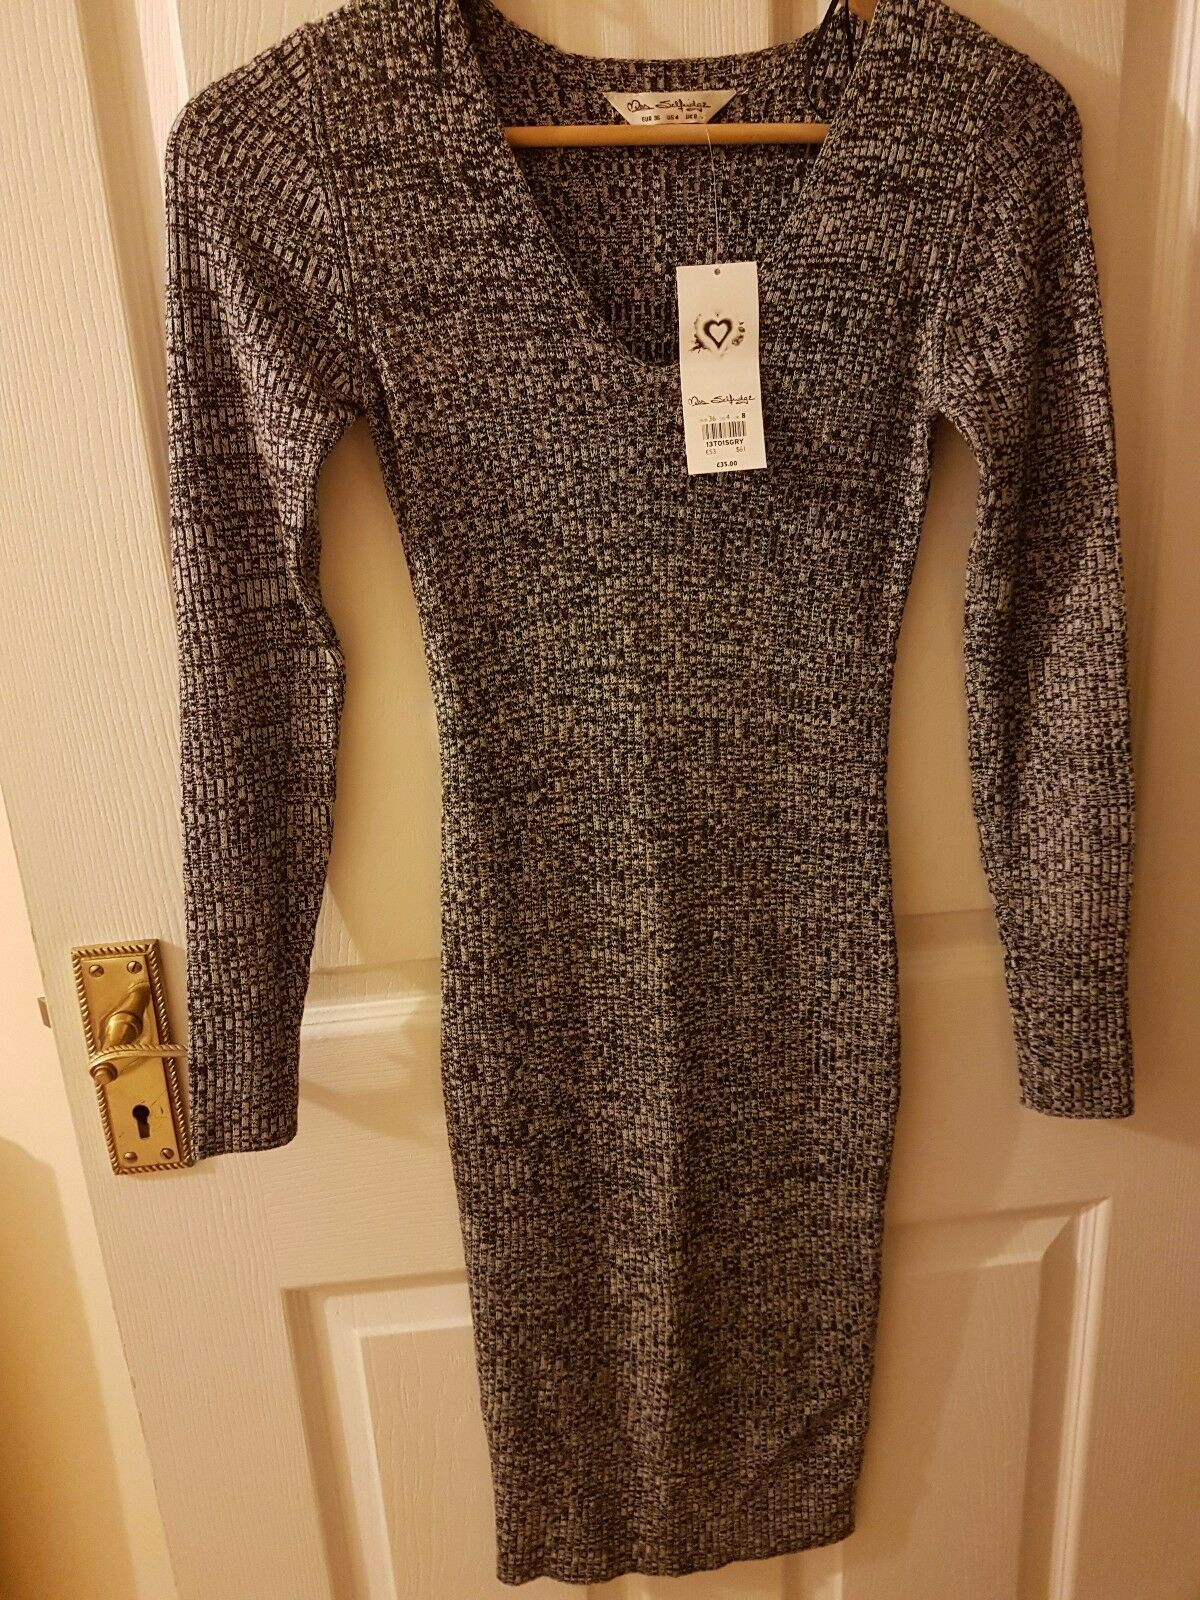 Miss selfridges size 8 bodycon with longsleeve. Very nice and warm.